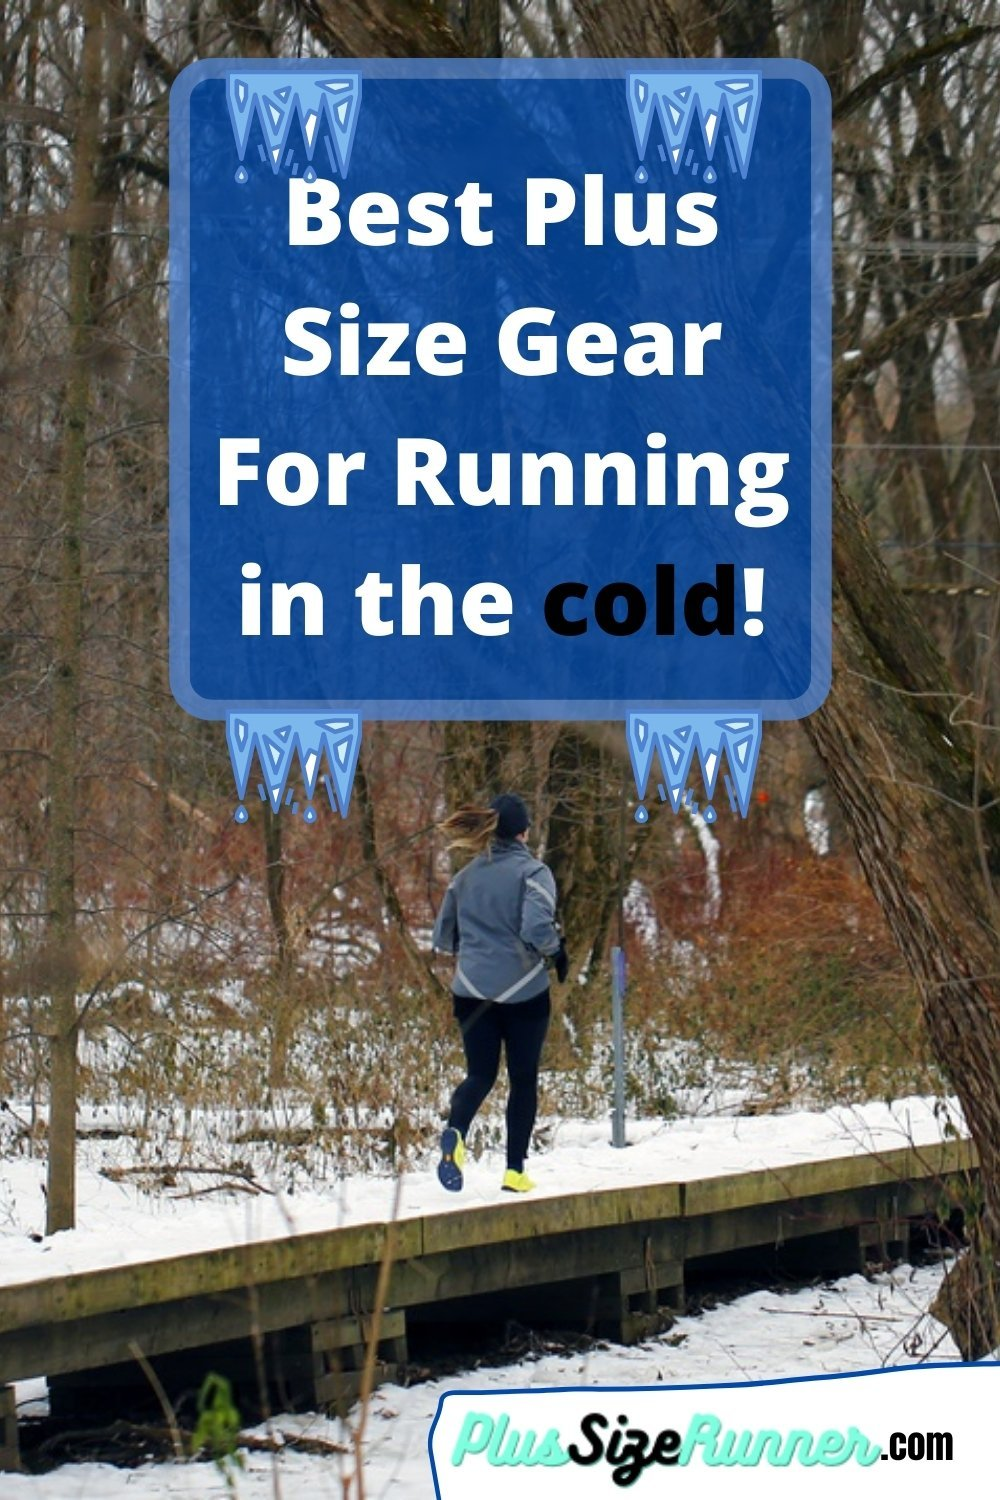 Best Plus Size Gear For Running In The Cold